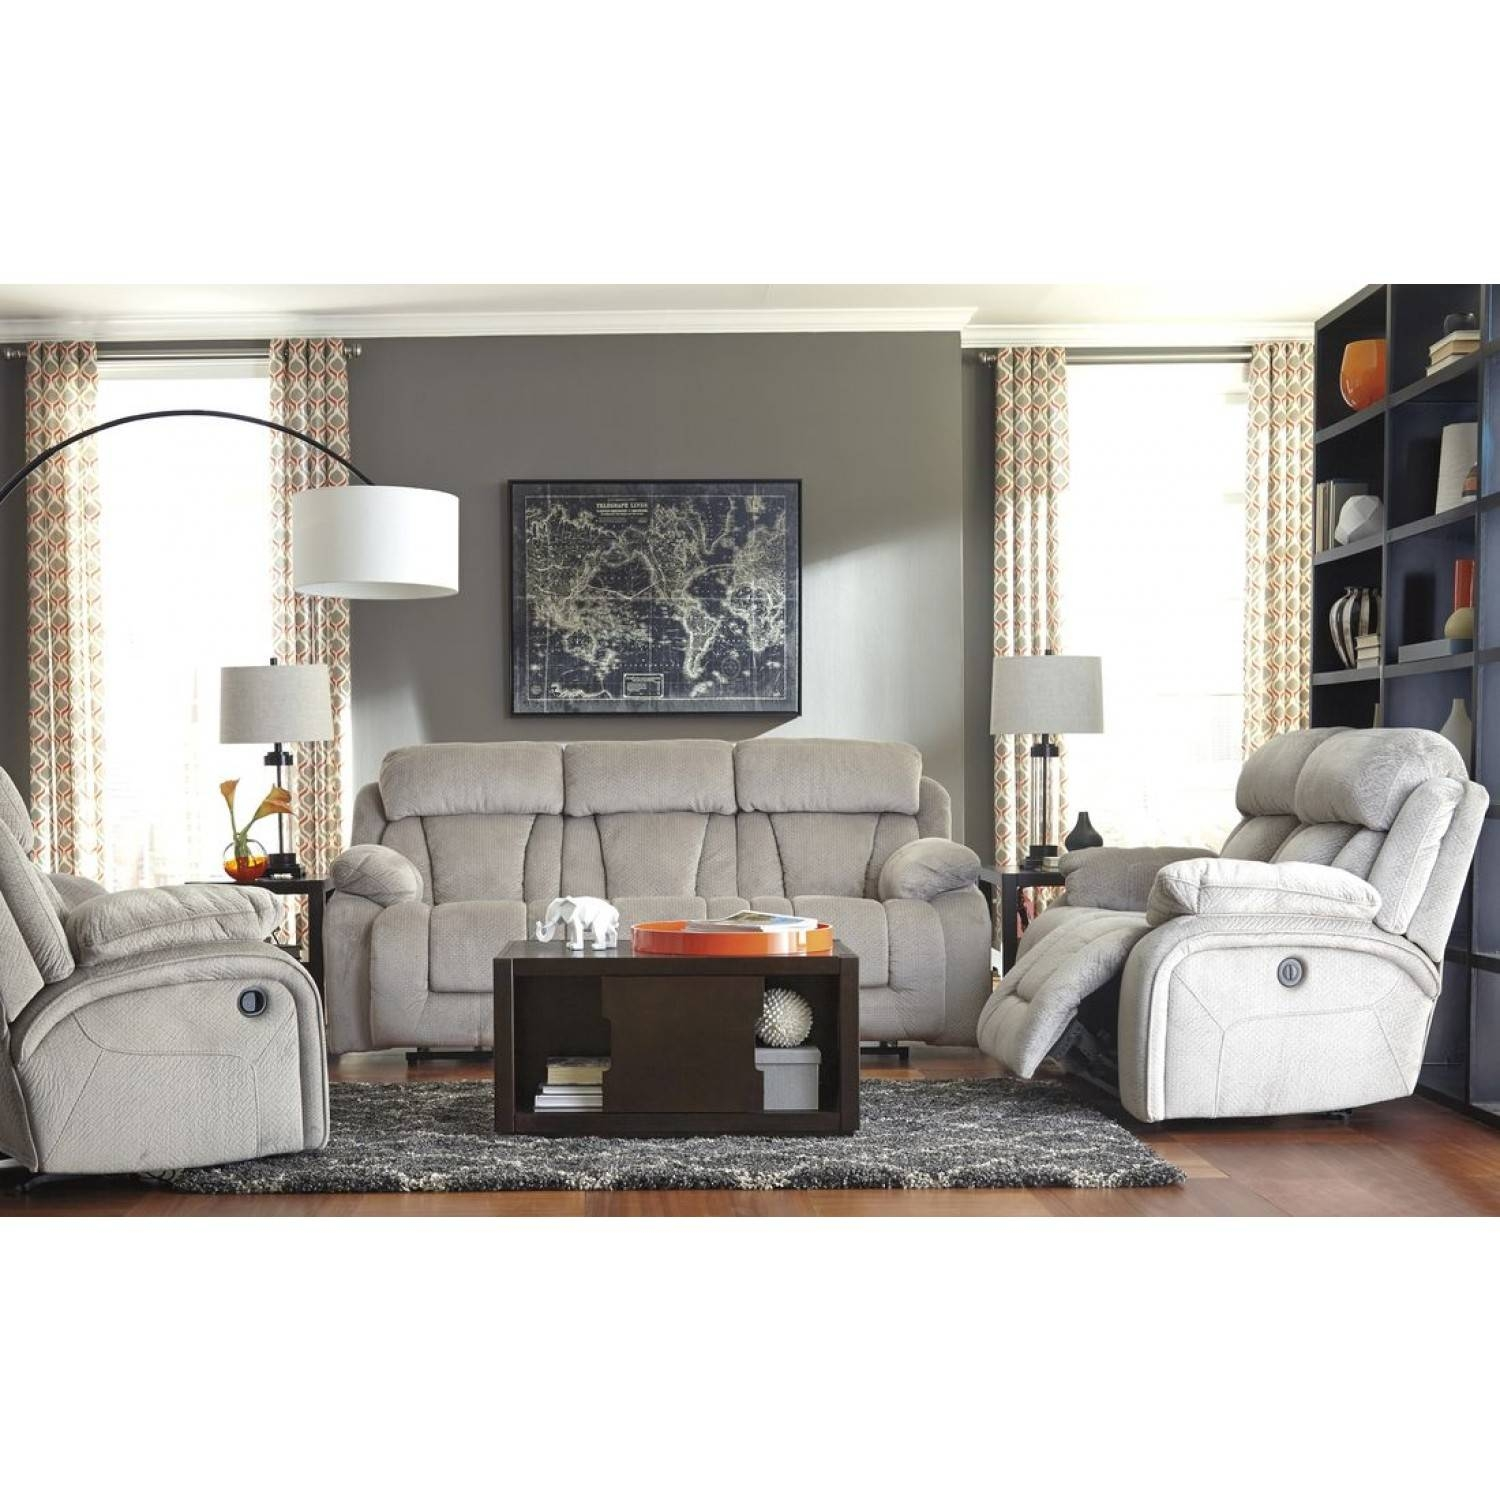 Ashley Furniture Stricklin Reclining Livingroom Set In Pebble pertaining to Ashley Furniture Gray Sofa (Image 10 of 30)